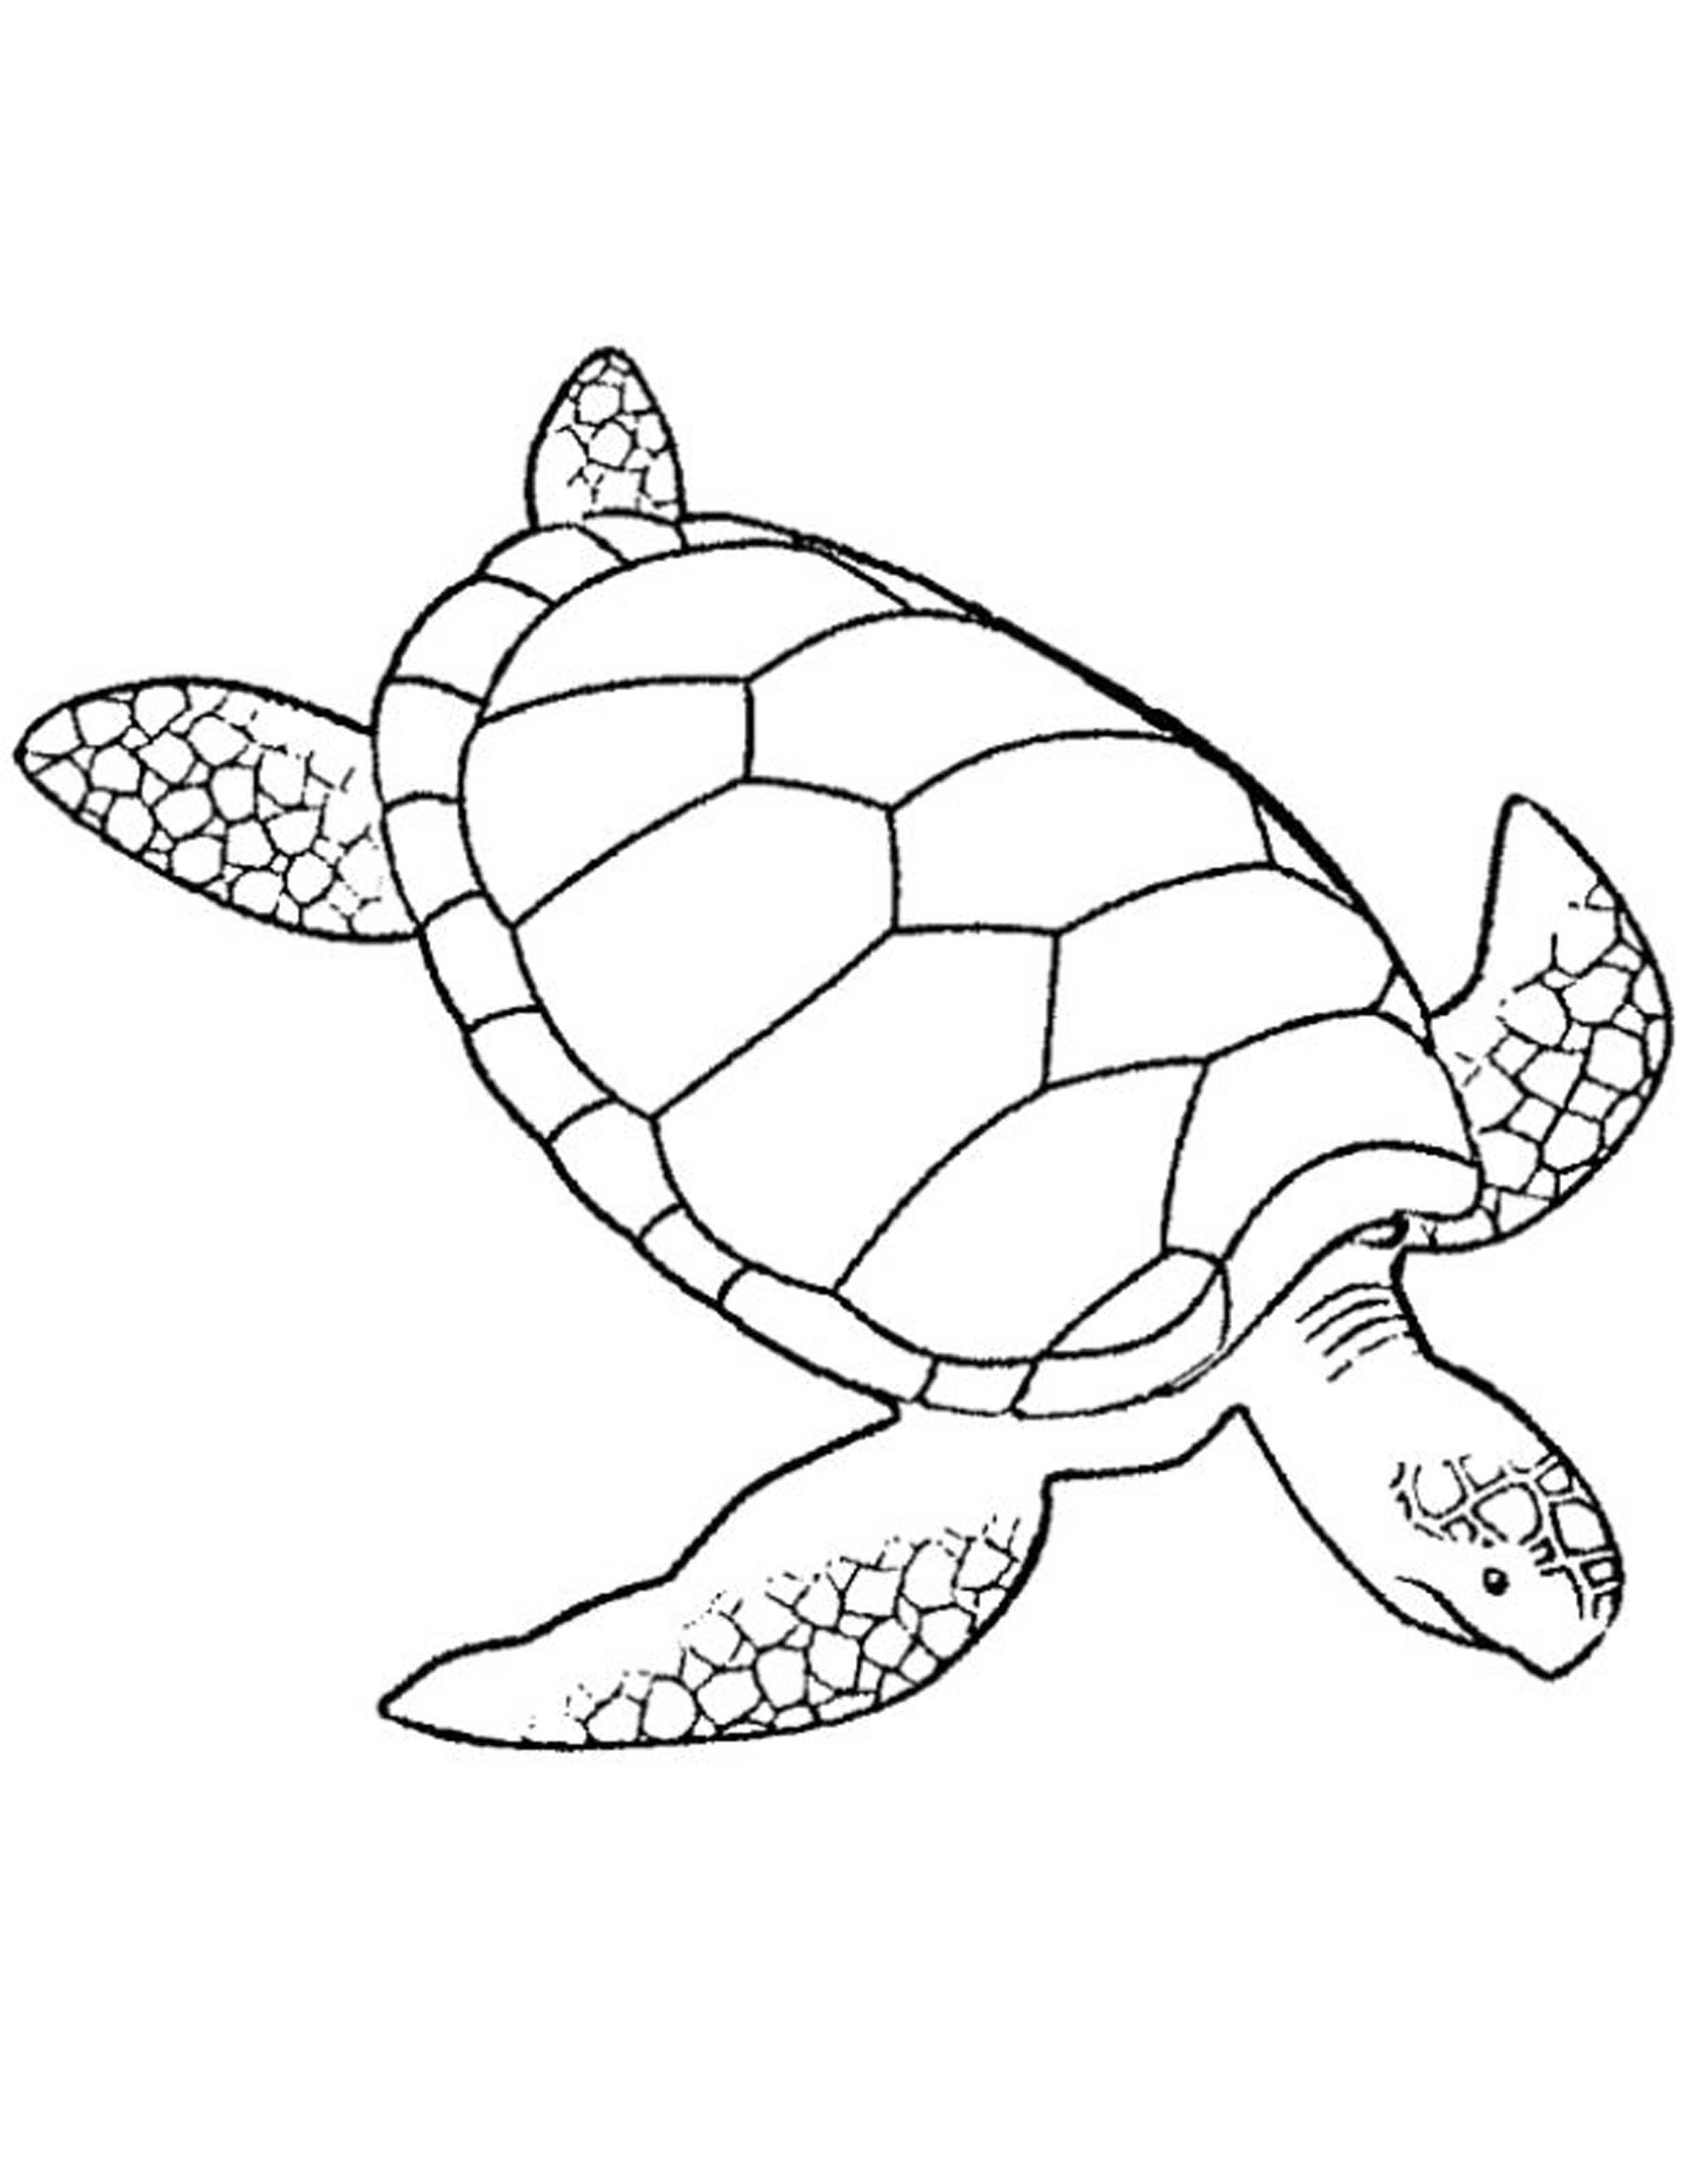 turtle coloring book page coloring pages turtles free printable coloring pages coloring page turtle book